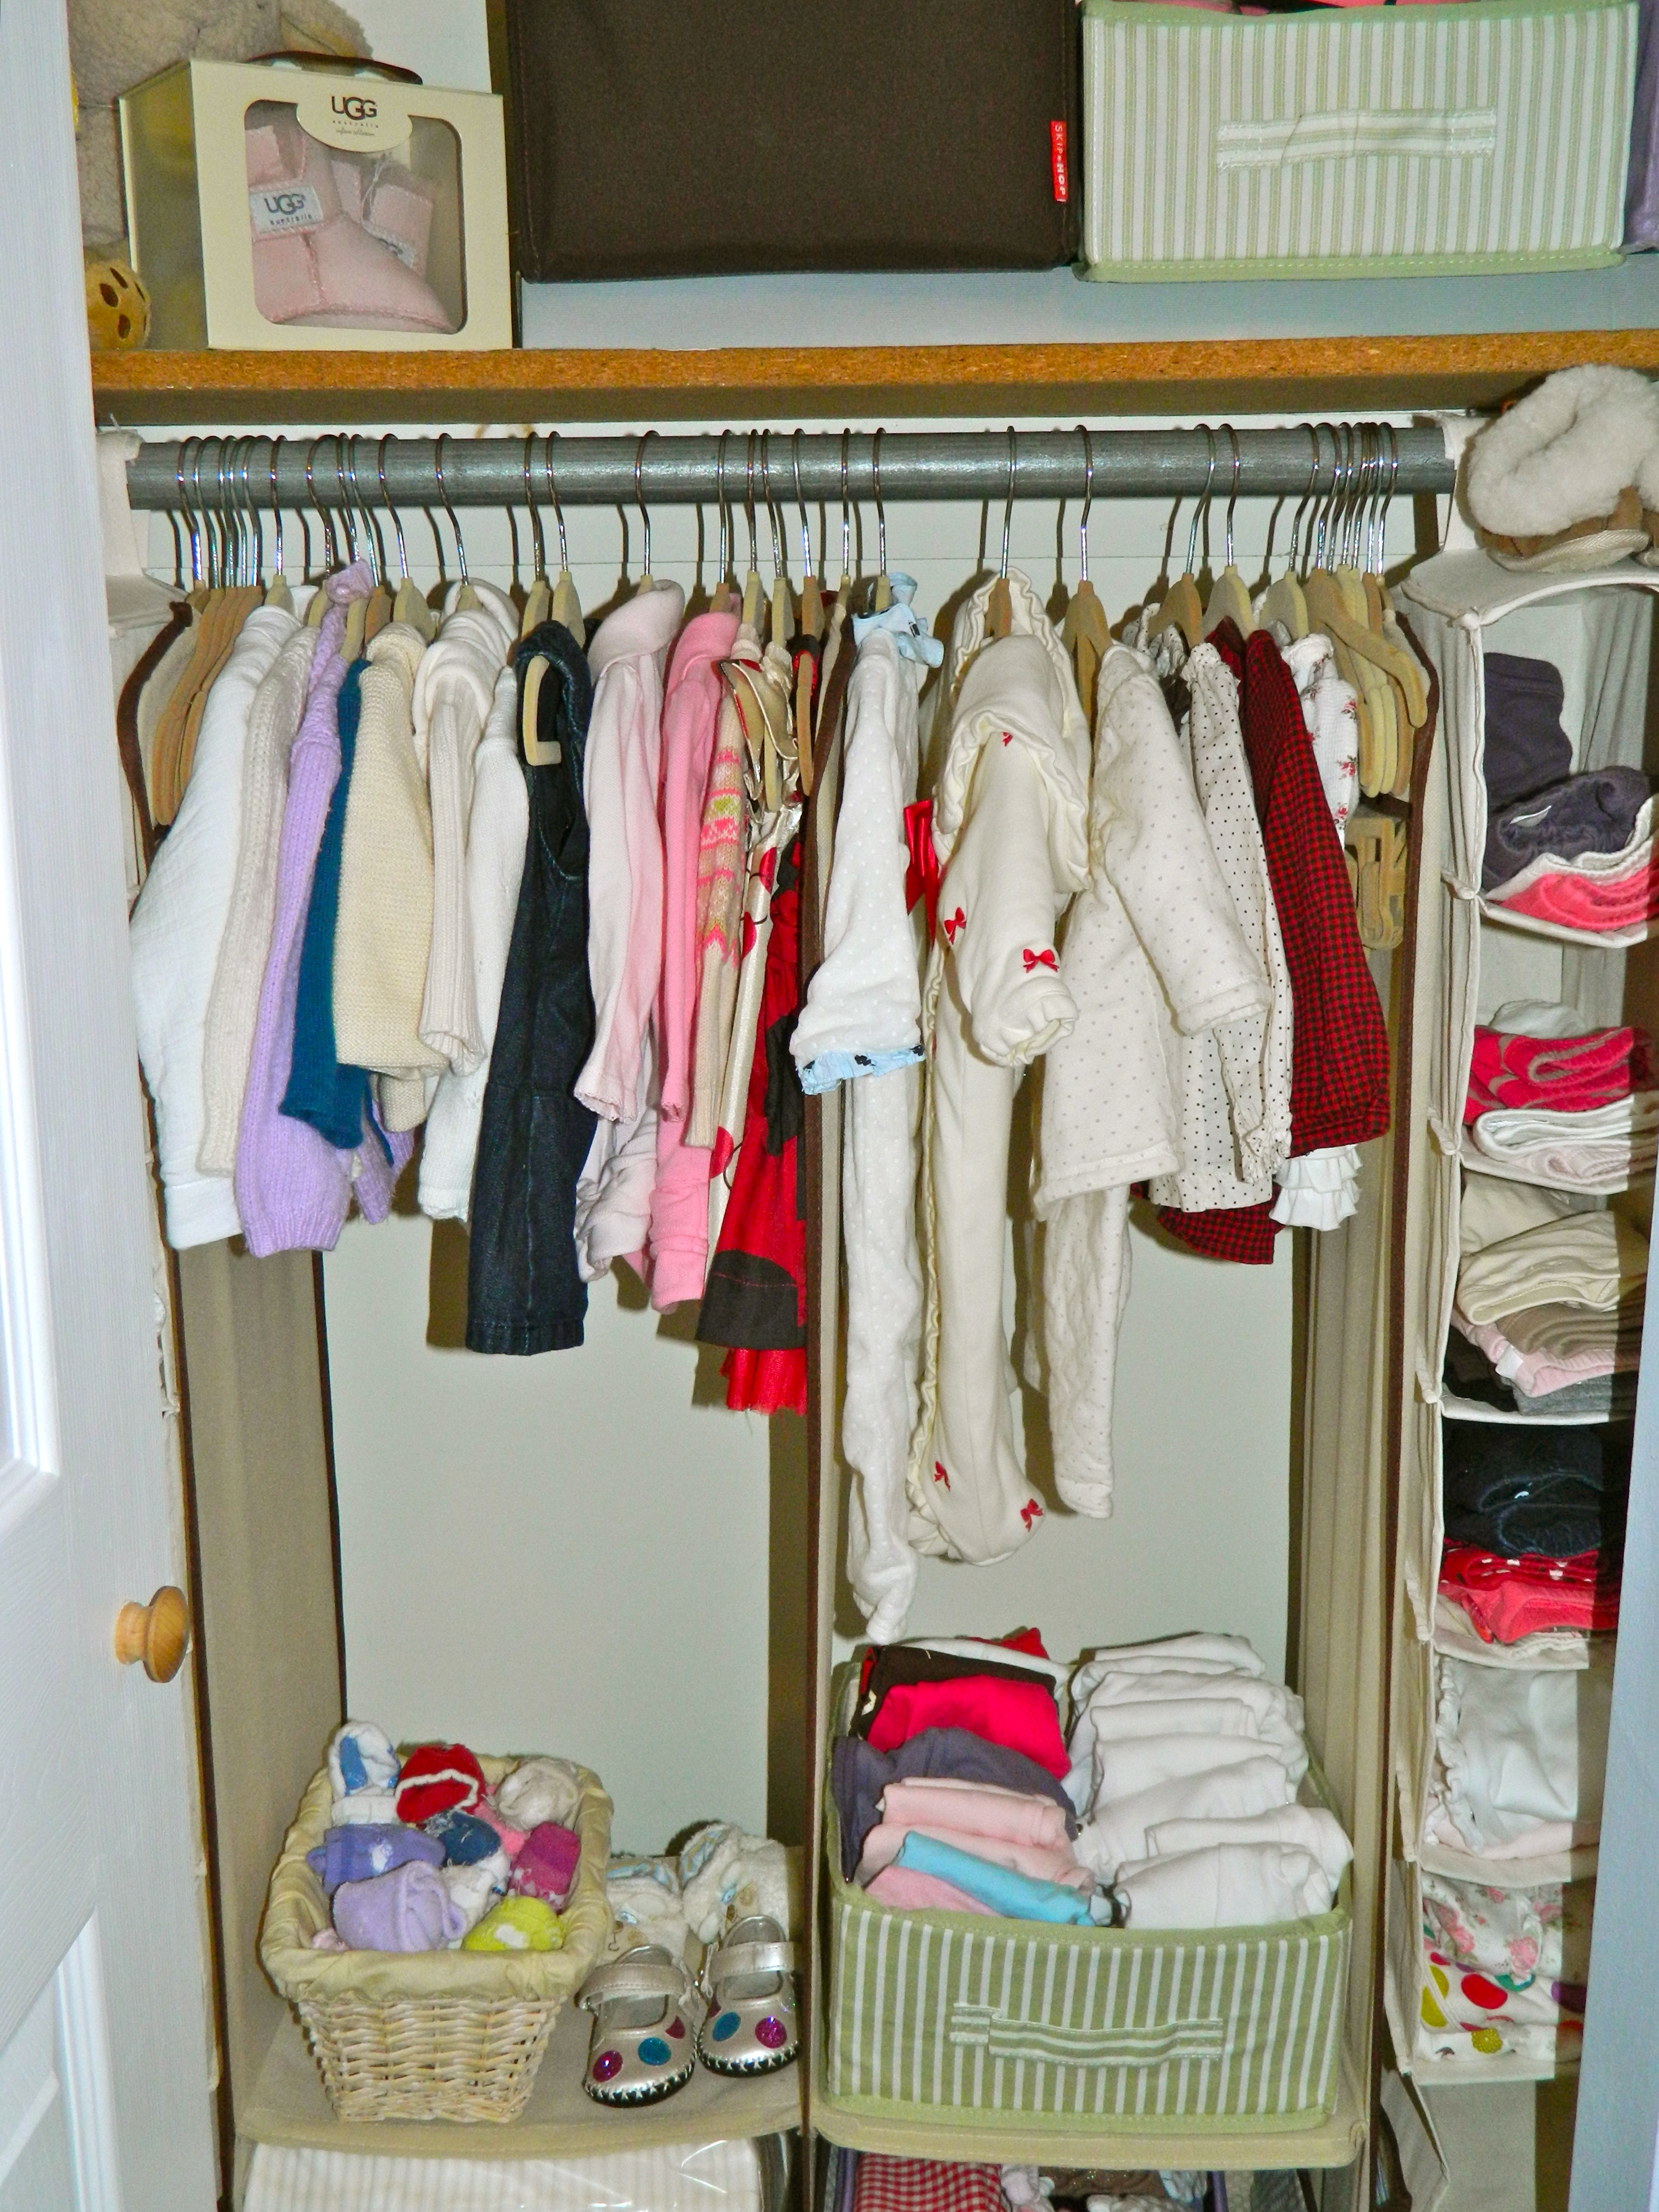 Maternity Clothes U2013 HAPPILY Packed These Away Into Storage Bins And Hanging  Bags, Although I Must Admit That I Will Miss That Elastic Waistband On My  Jeans ...